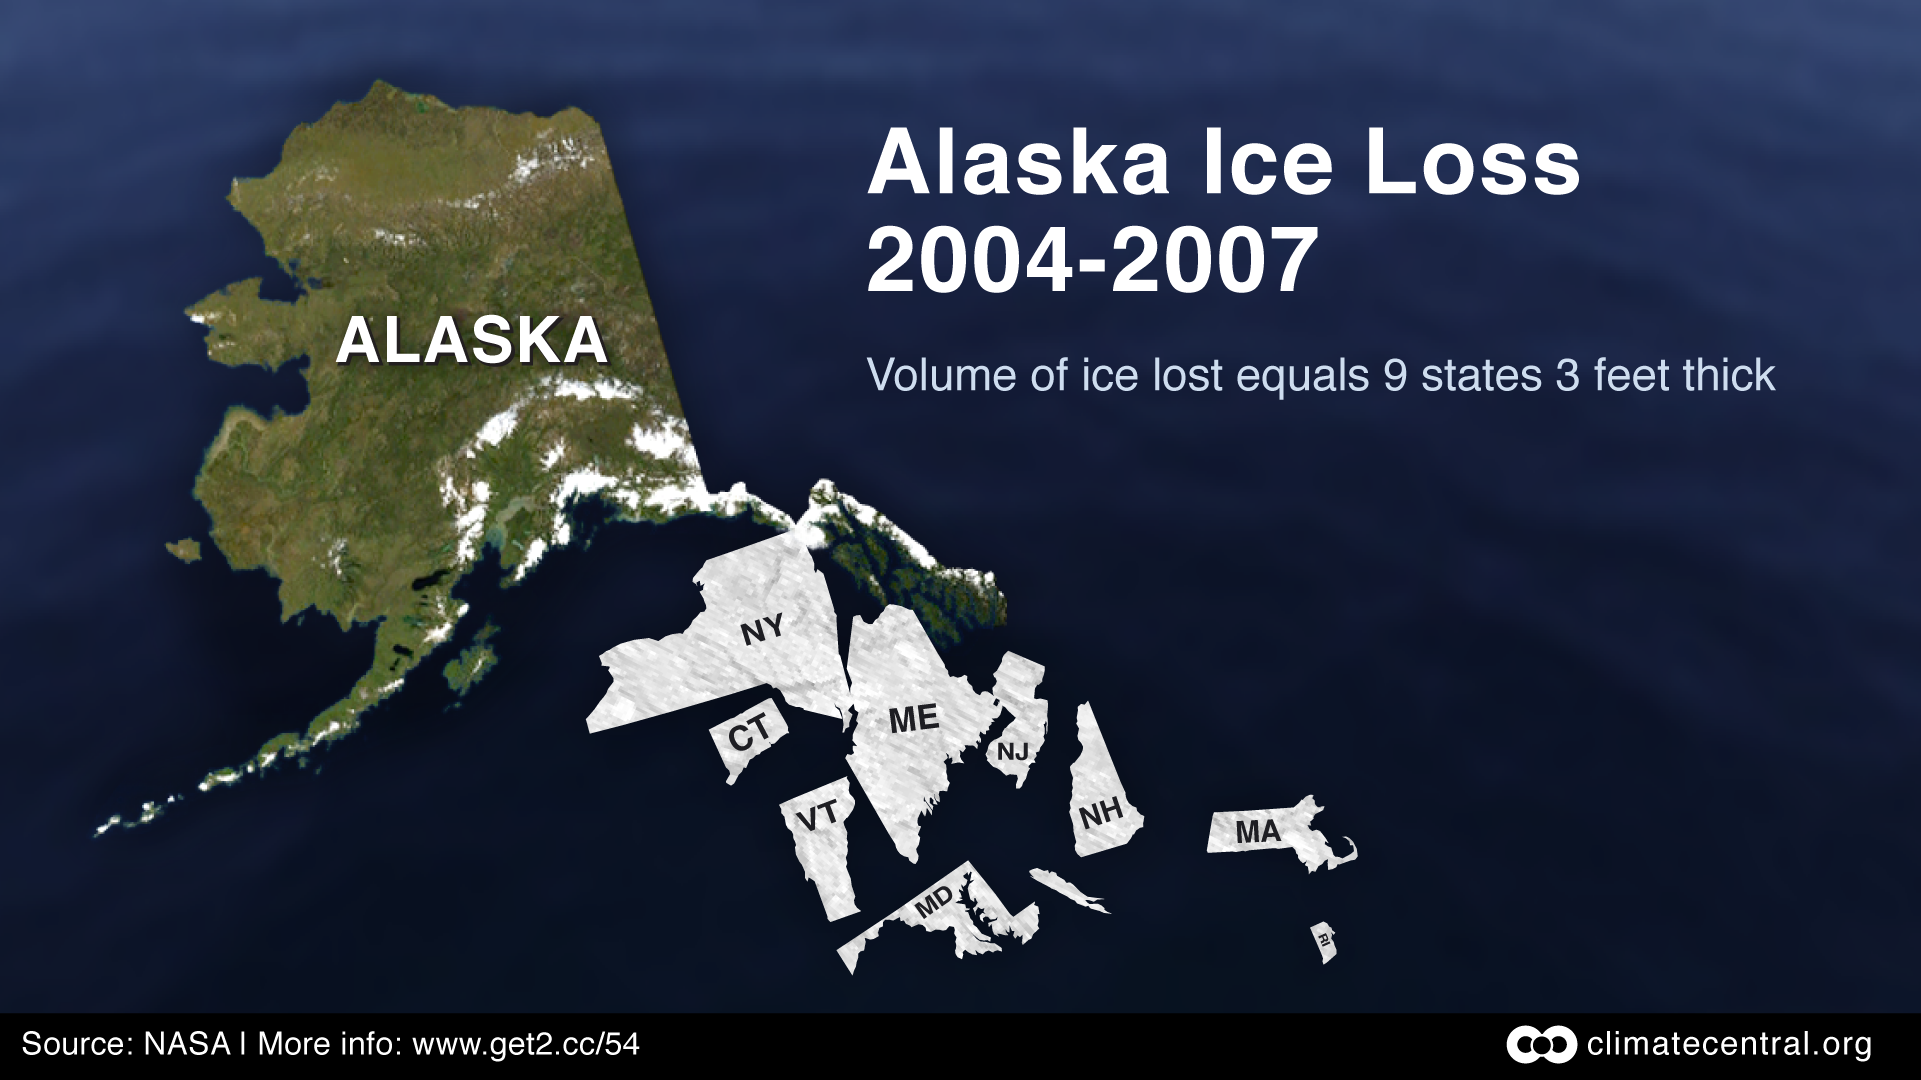 Volume of ice lost would equal a sheet 3' thick covering 9 states for AK…